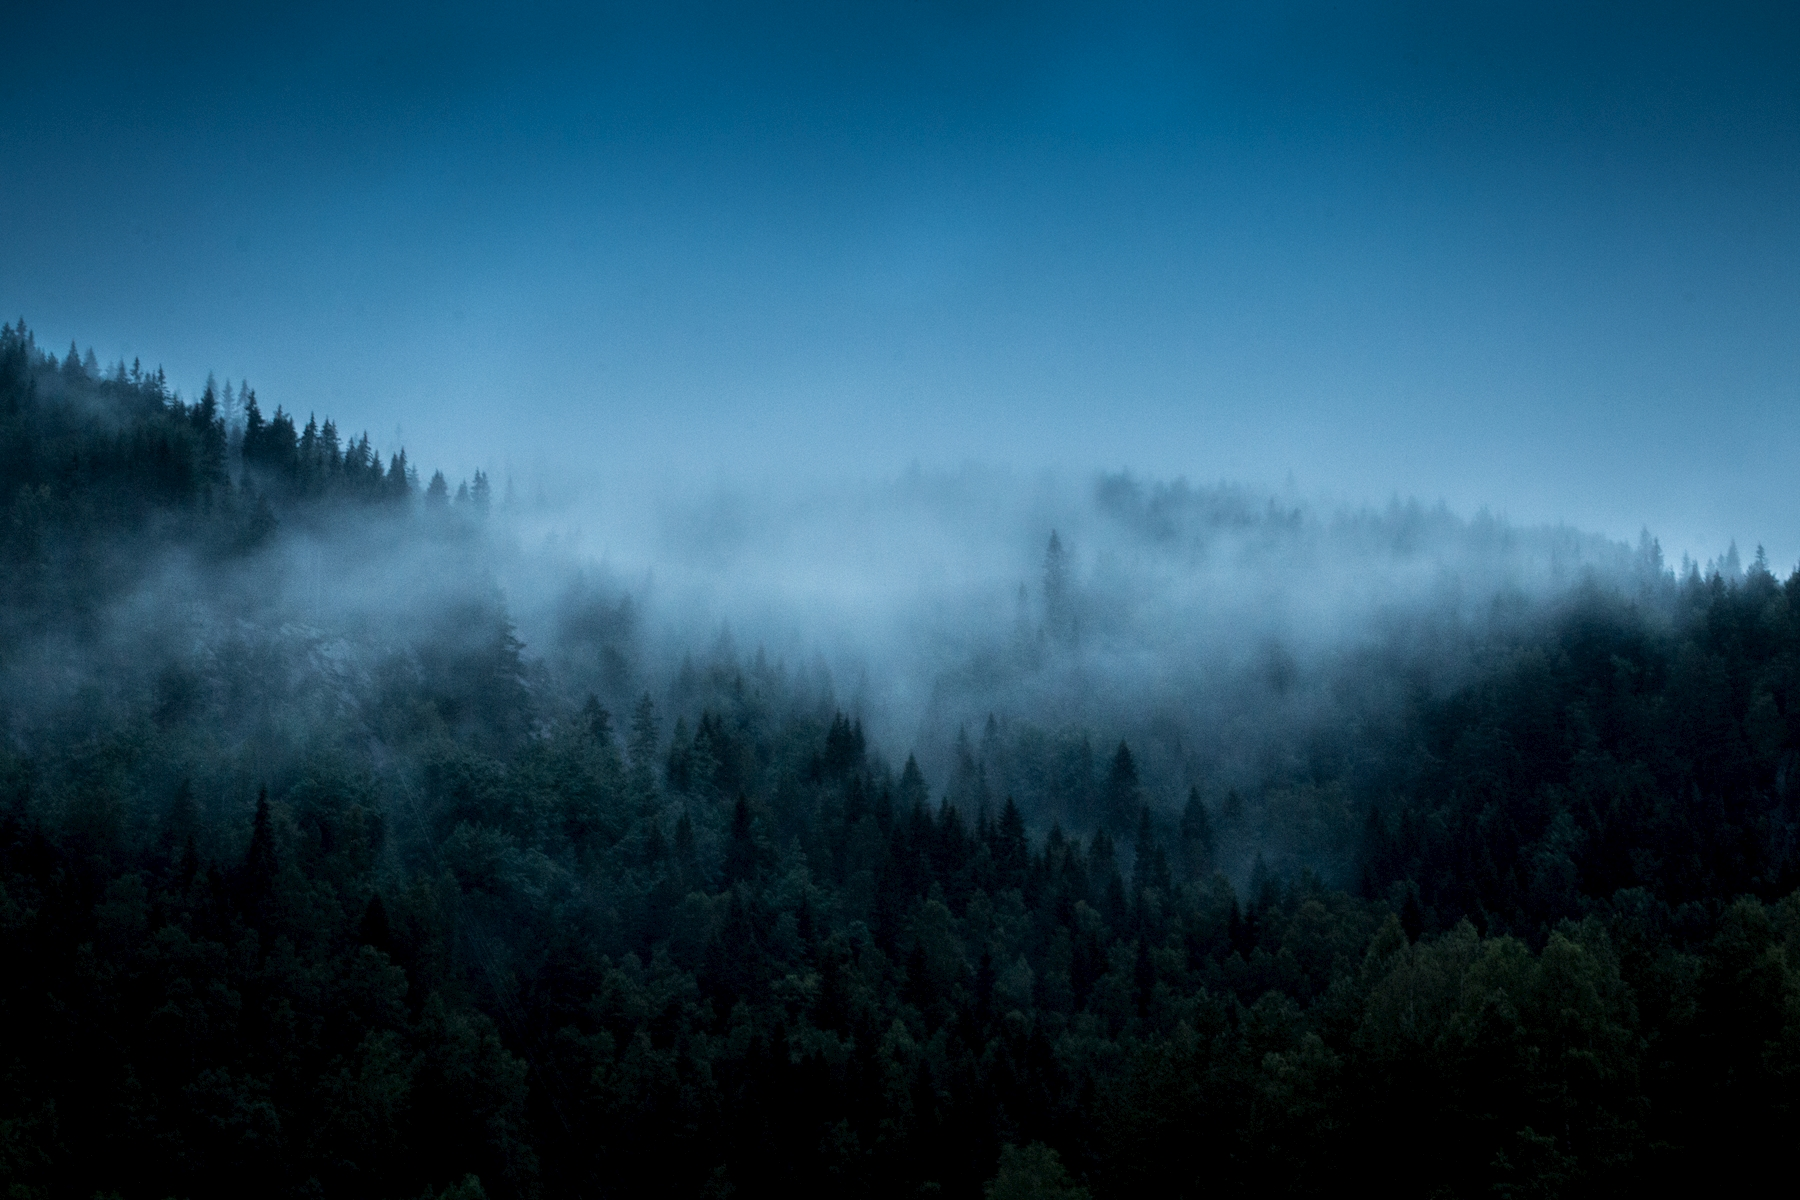 Fog over the trees posters & prints by Eric Karlsson